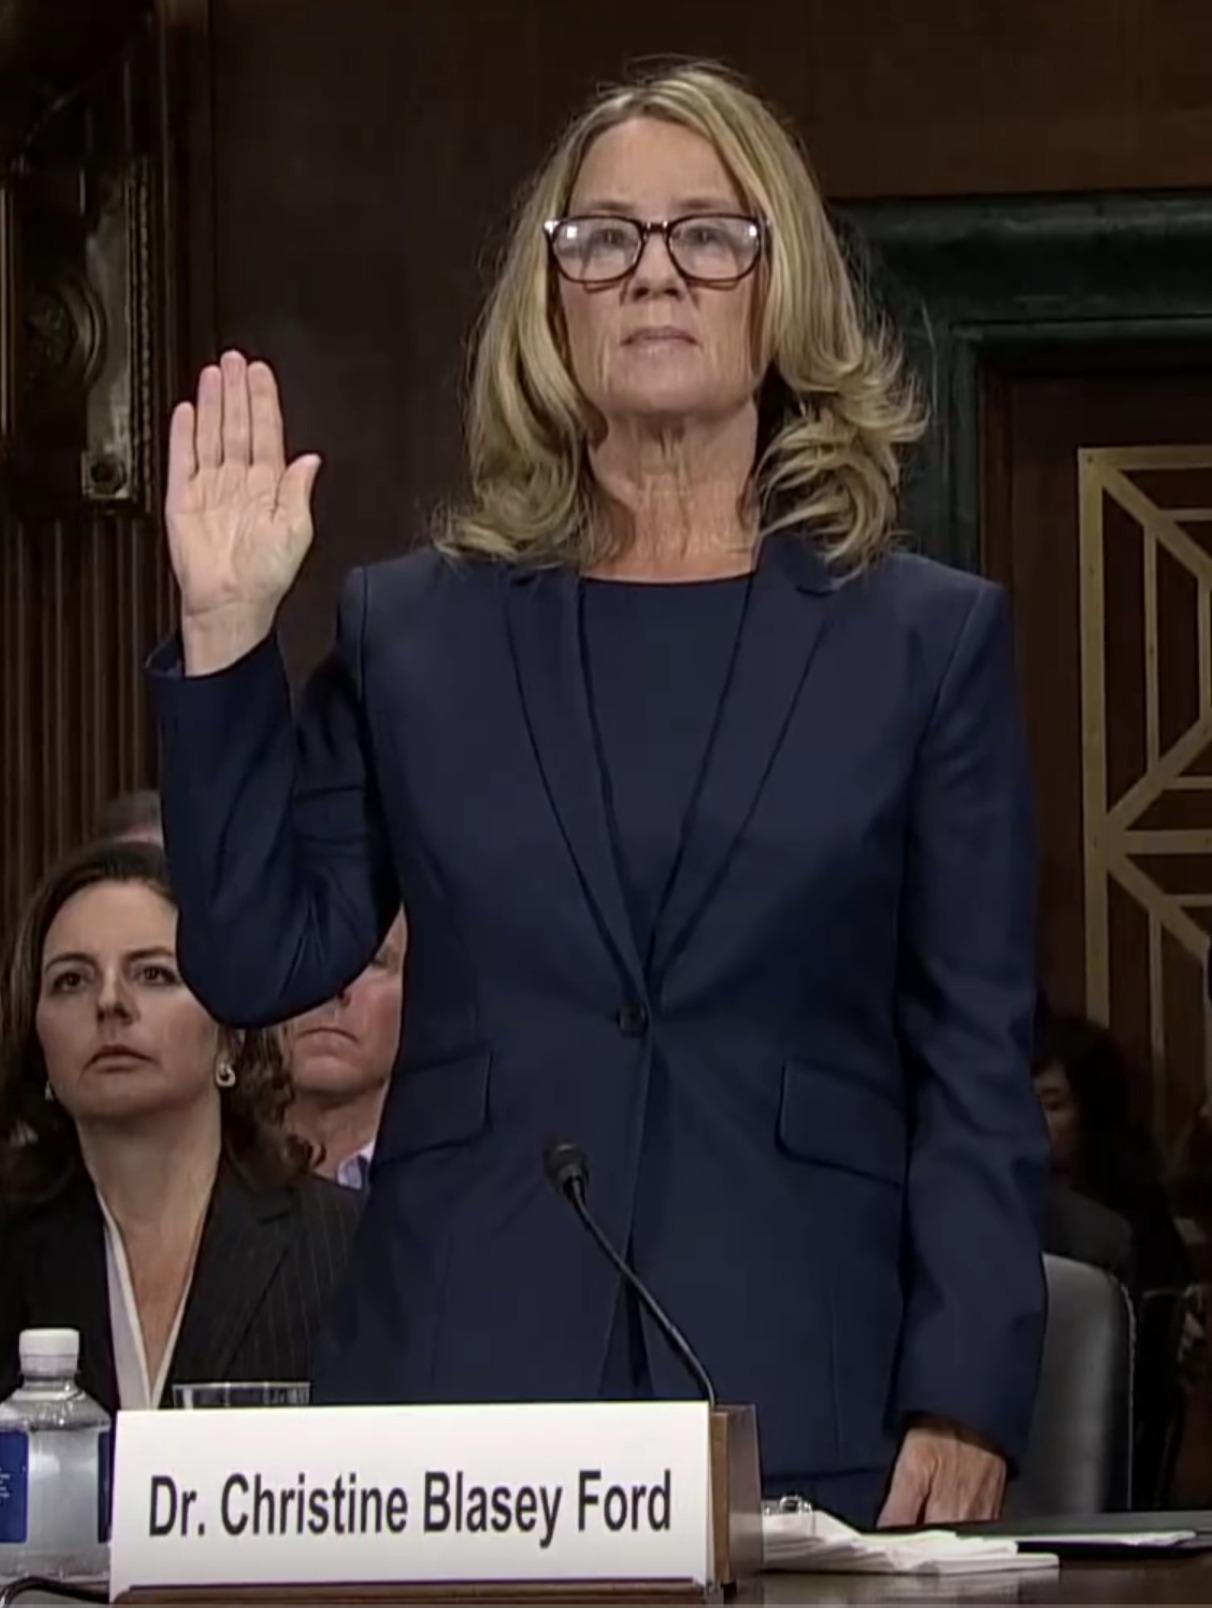 Christine Blasey Ford swearing in before the Senate Judiciary Committee. Photo credits: United States Senate Committee on the Judiciary.